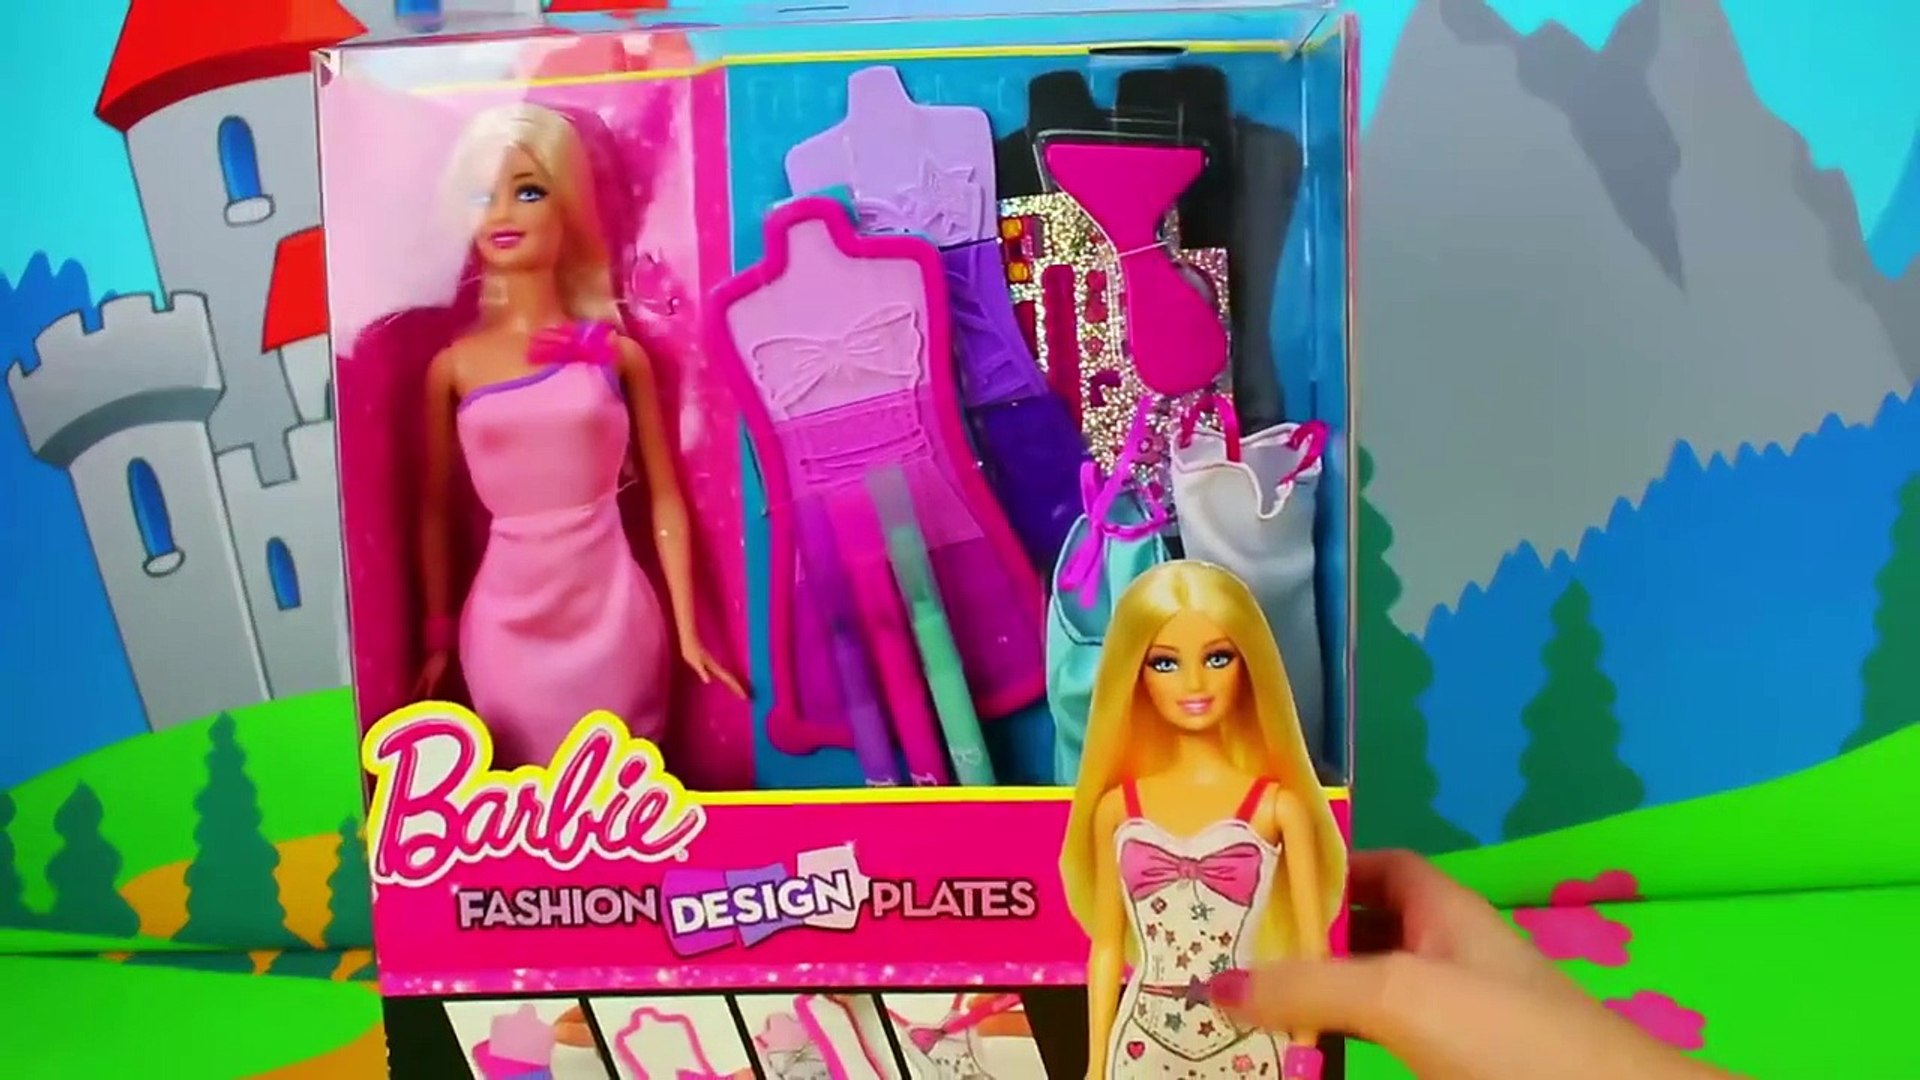 Disneytoysfan Barbie Fashion Design Plates Dress Play Set Toy Review Dailymotion Video